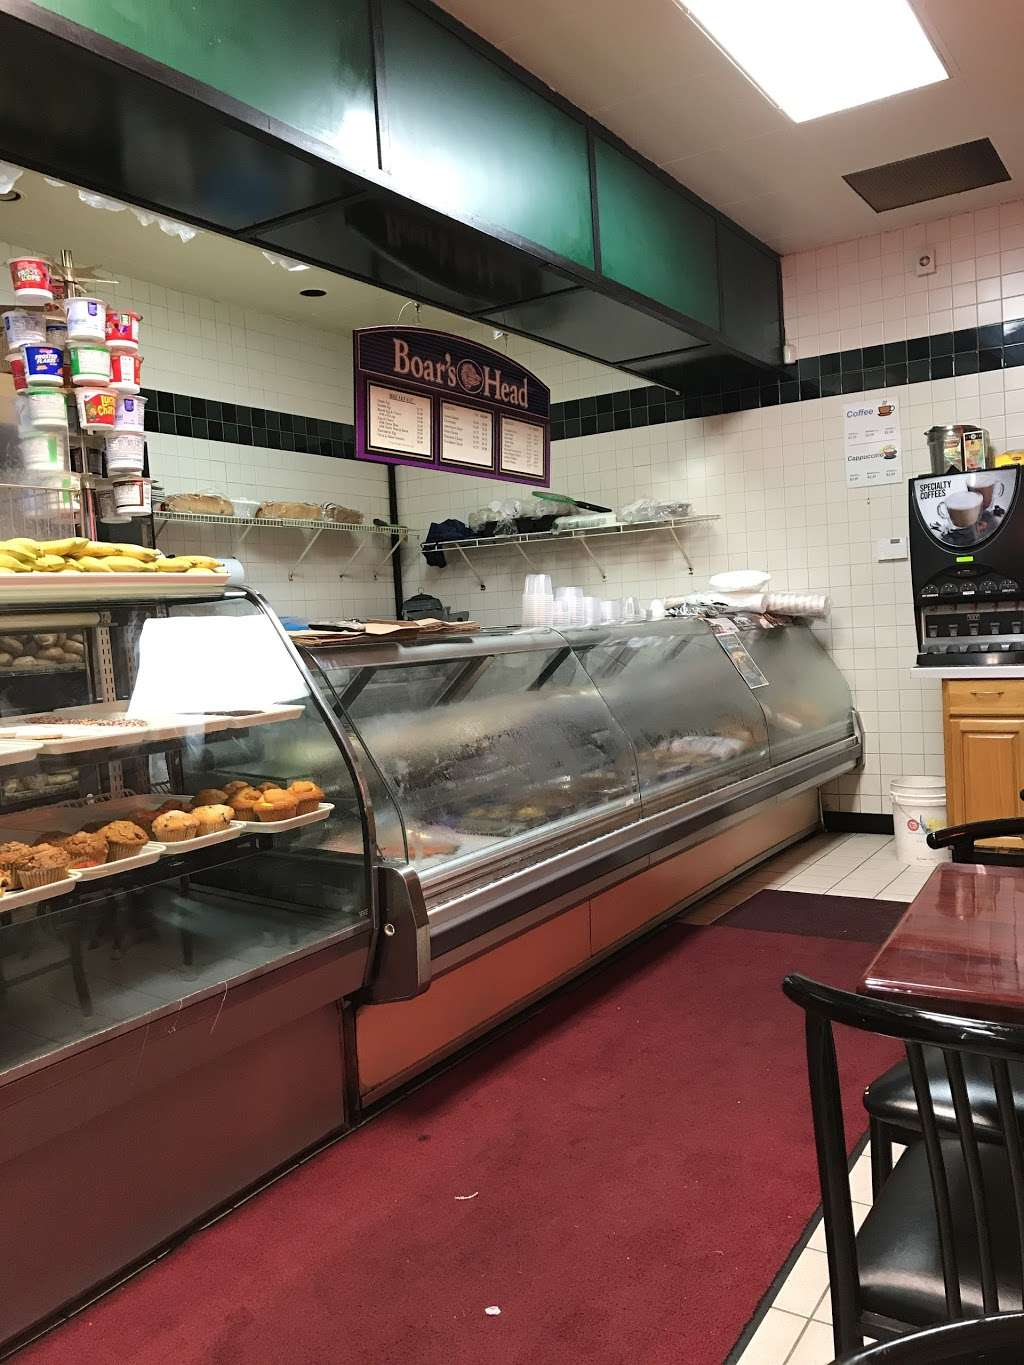 Goldbergs Bagels & Deli - bakery  | Photo 7 of 10 | Address: 777 Central Park Ave, Yonkers, NY 10704, USA | Phone: (914) 964-9224